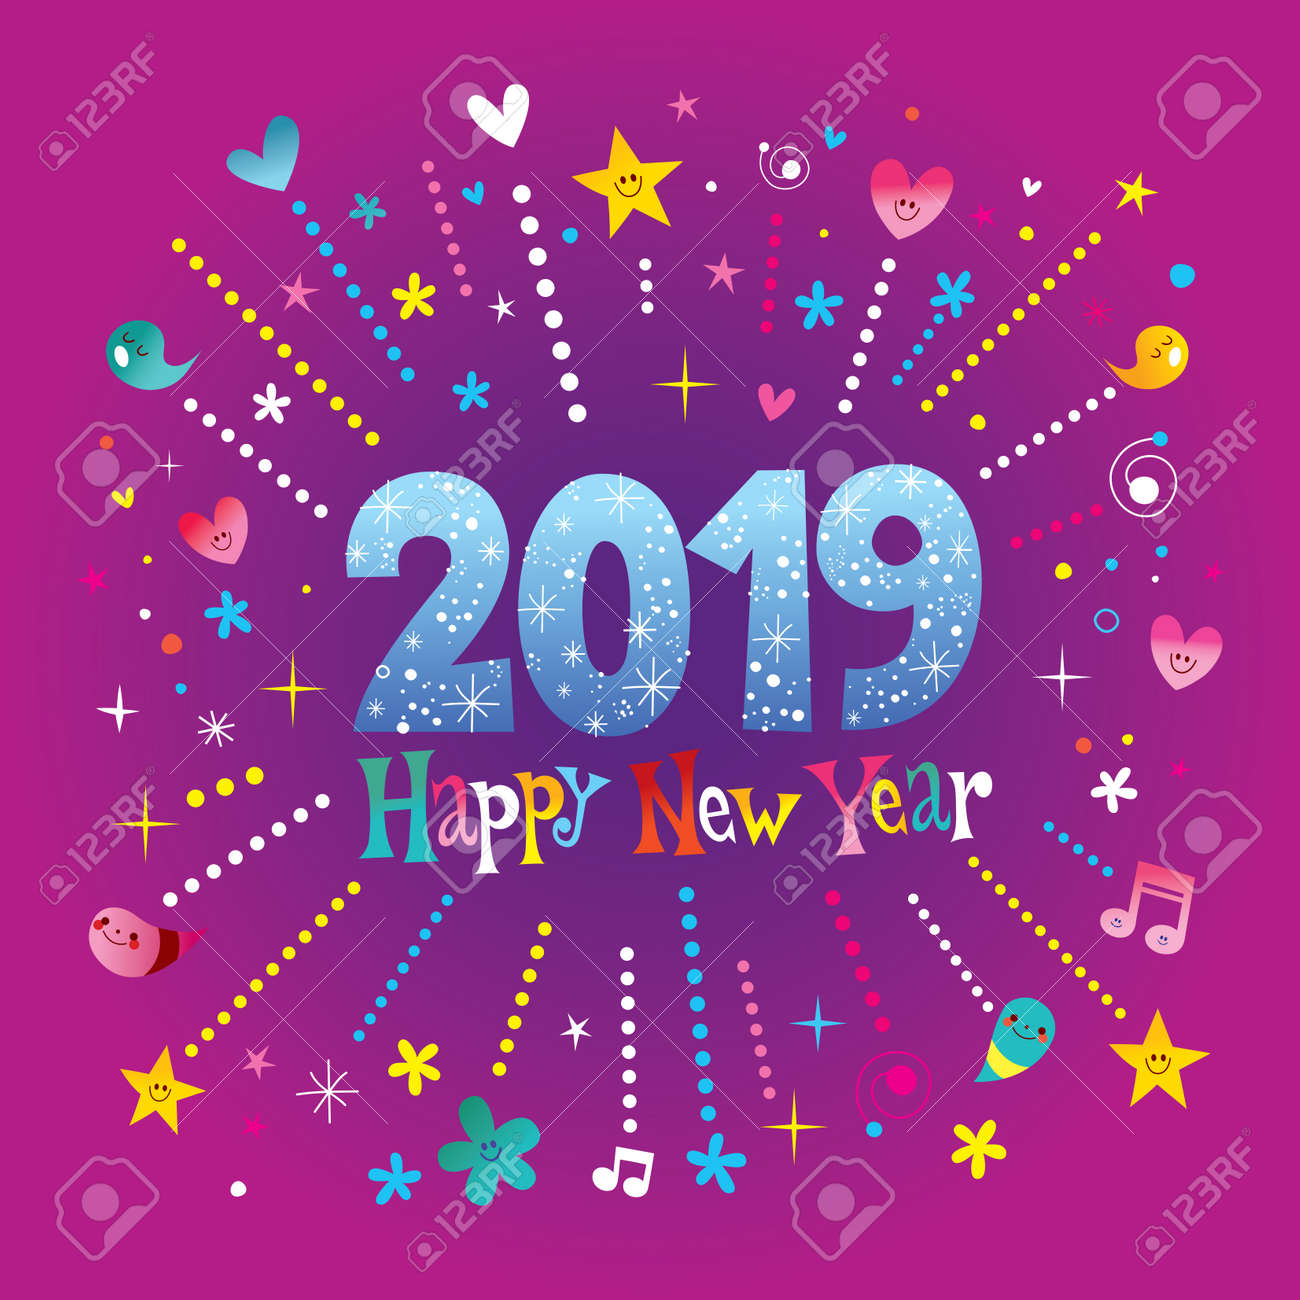 Happy new year 2019 greeting card with stars hearts musical happy new year 2019 greeting card with stars hearts musical instruments on purple background m4hsunfo